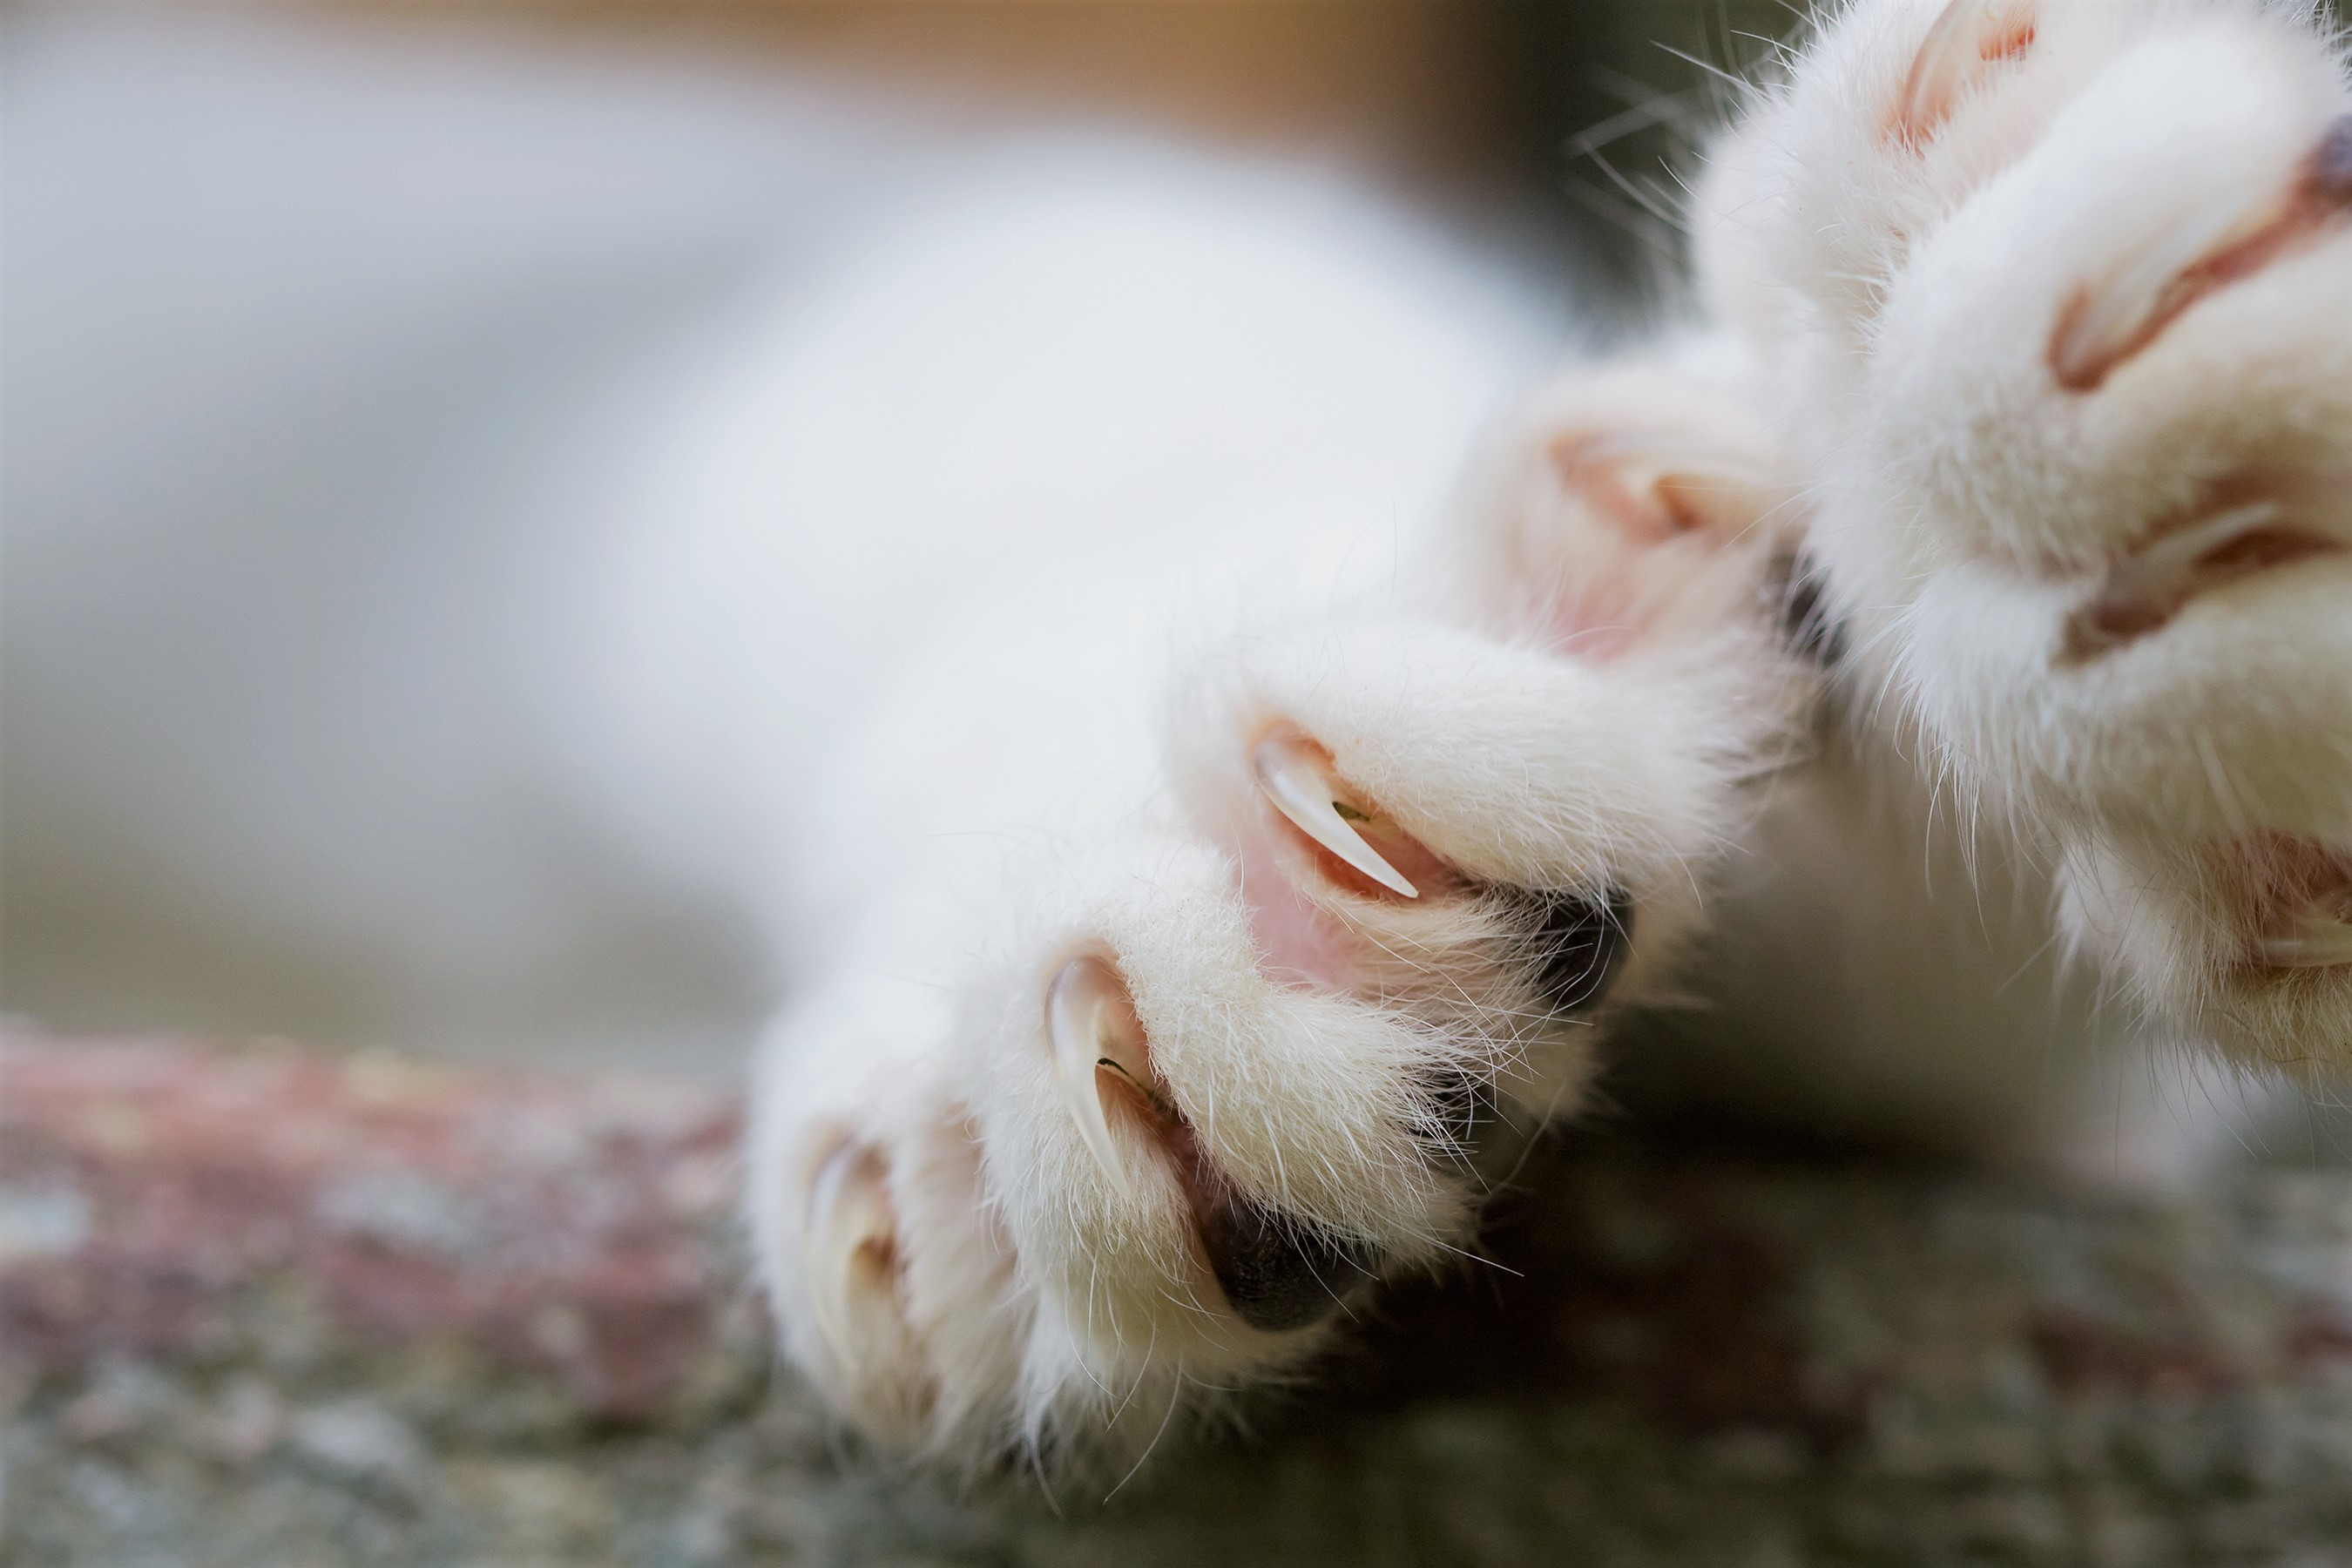 New York Could Become the First State to Ban Pet Owners from Declawing Their Cats